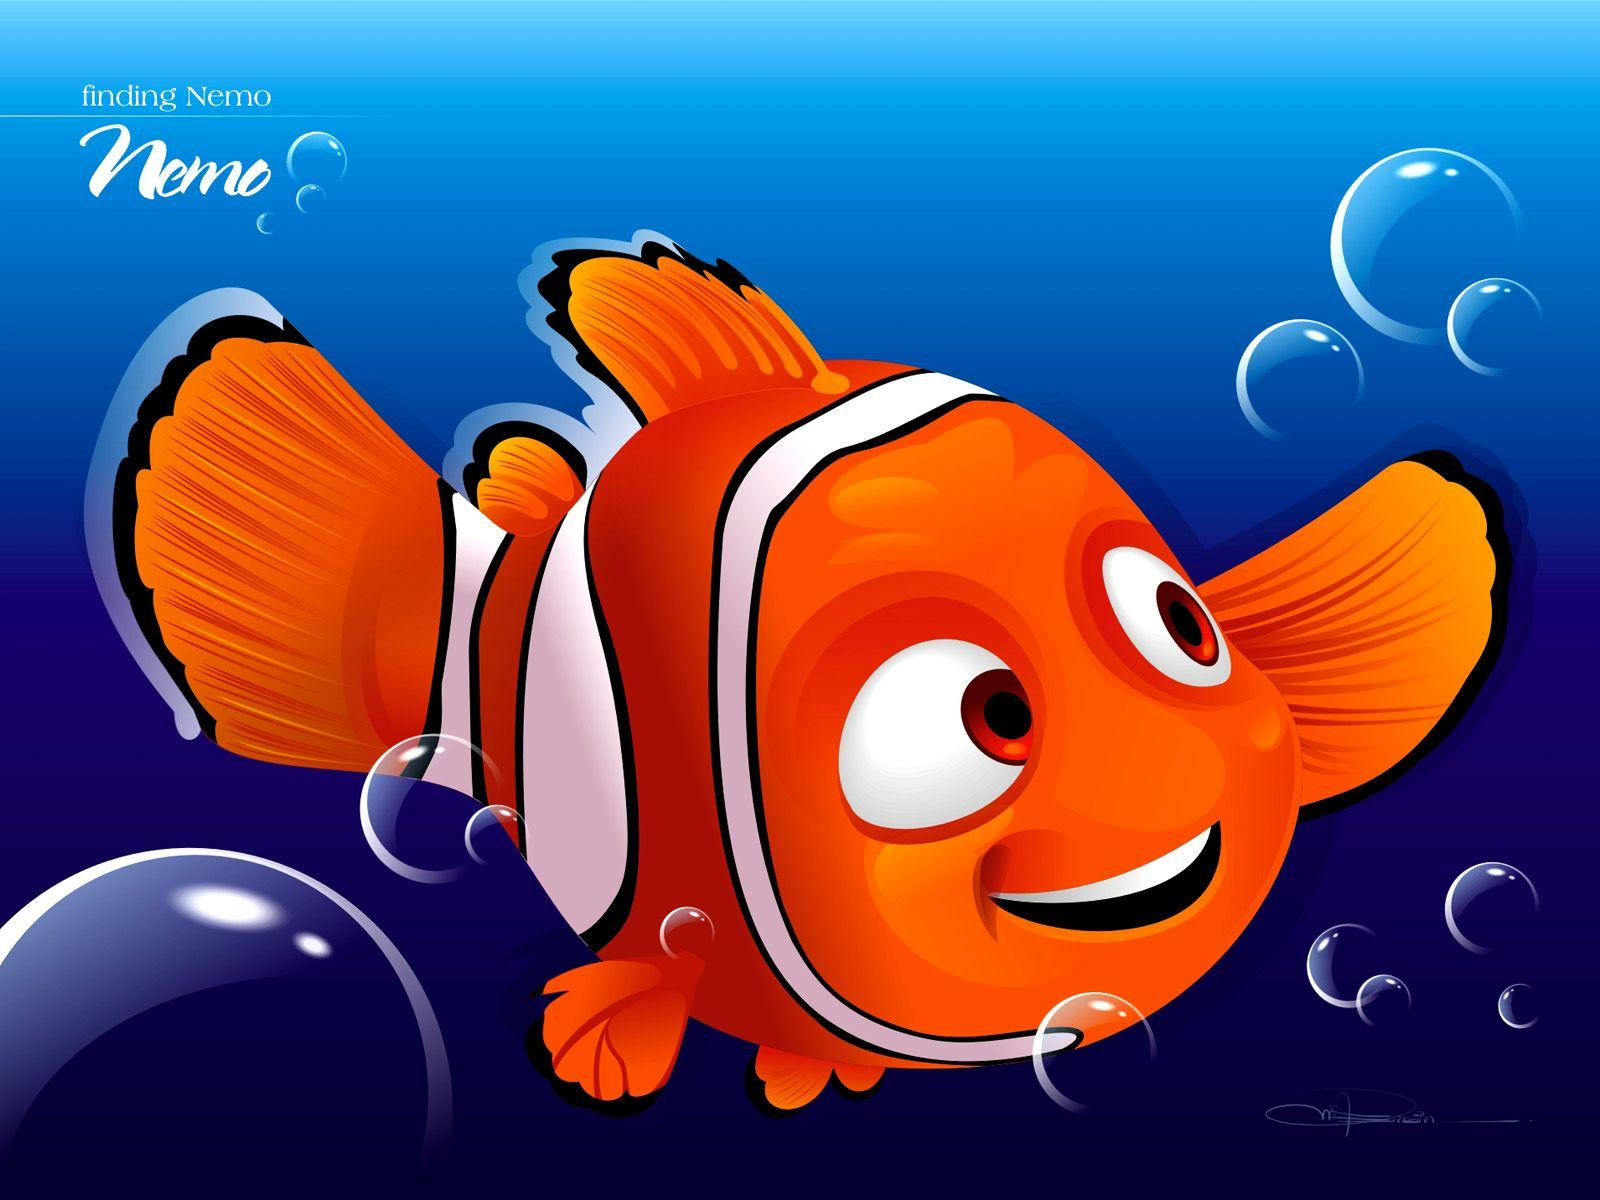 findingNemo by cd